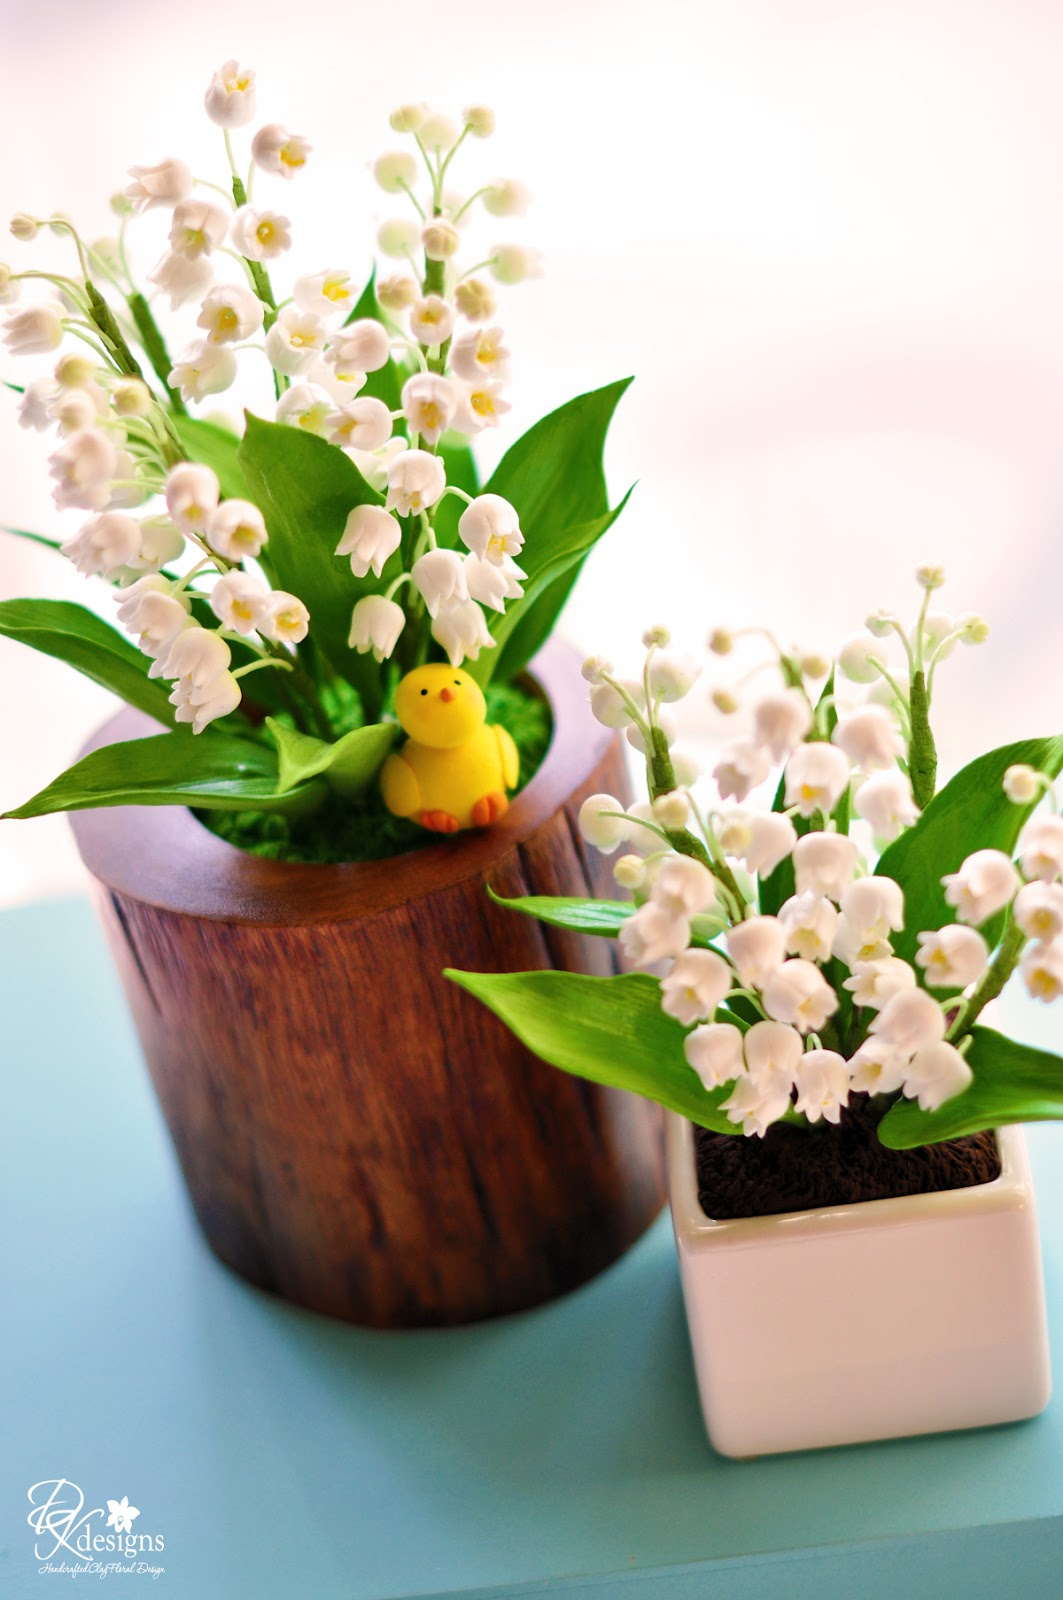 Dk designs lily of the valley plants dk designs lily of the valley plants izmirmasajfo